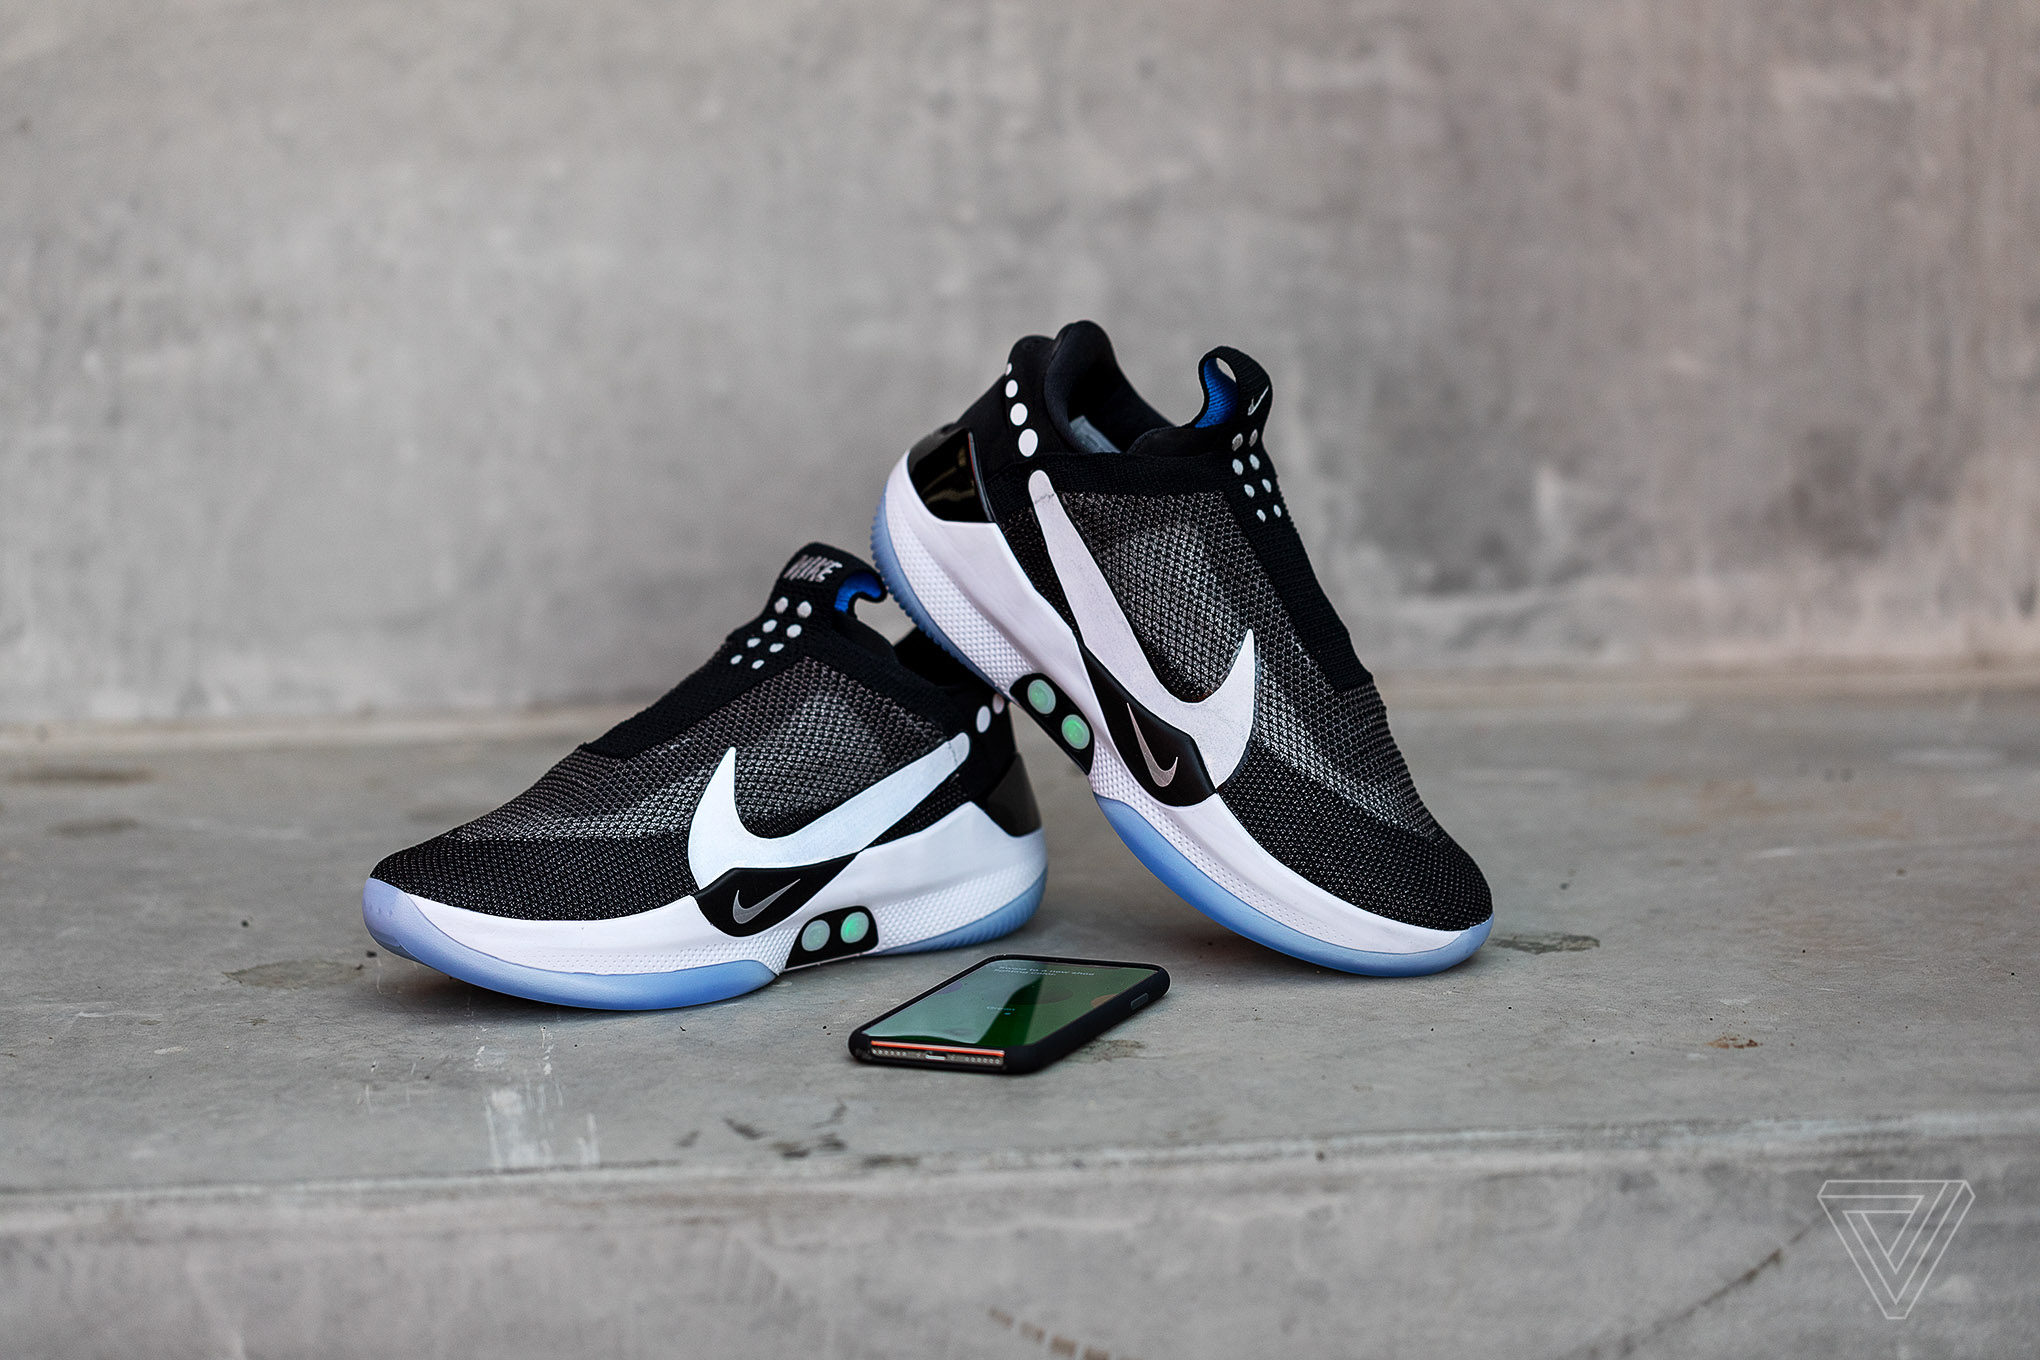 0955e861c3f5 Nike s Adapt BB self-lacing sneakers let you tie your shoes from an ...